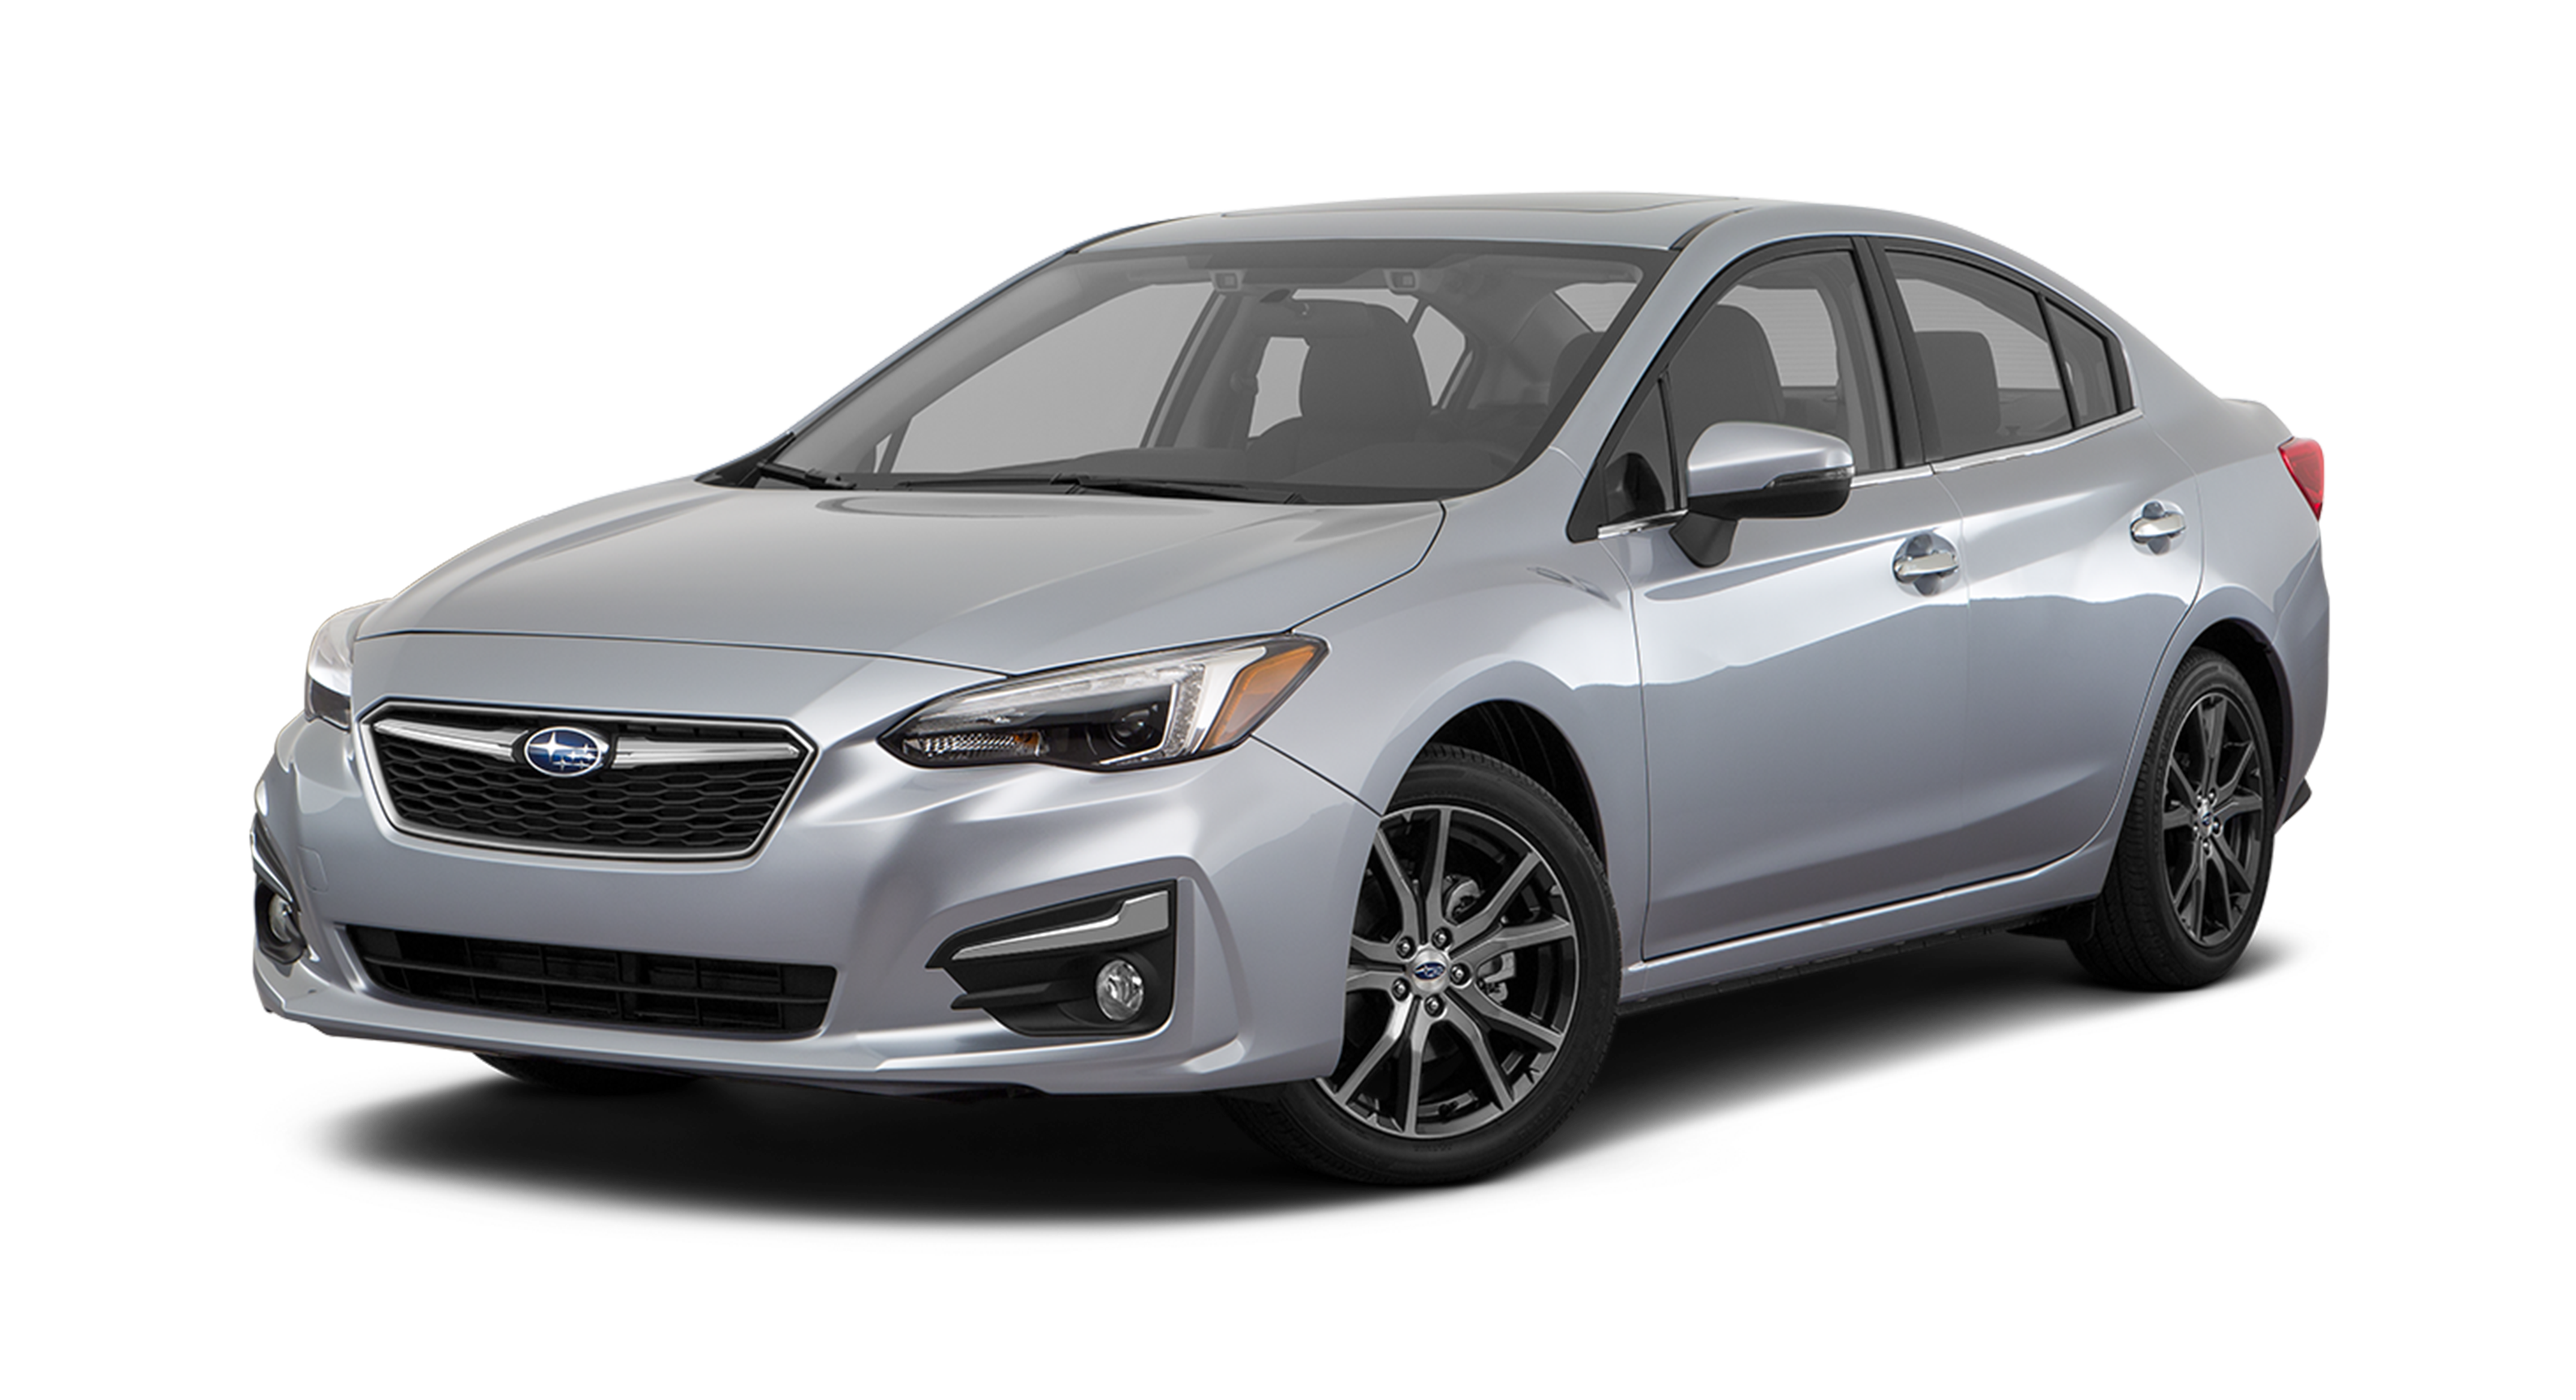 21 All New The Subaru Sti Wagon 2019 Specs And Review Photos for The Subaru Sti Wagon 2019 Specs And Review